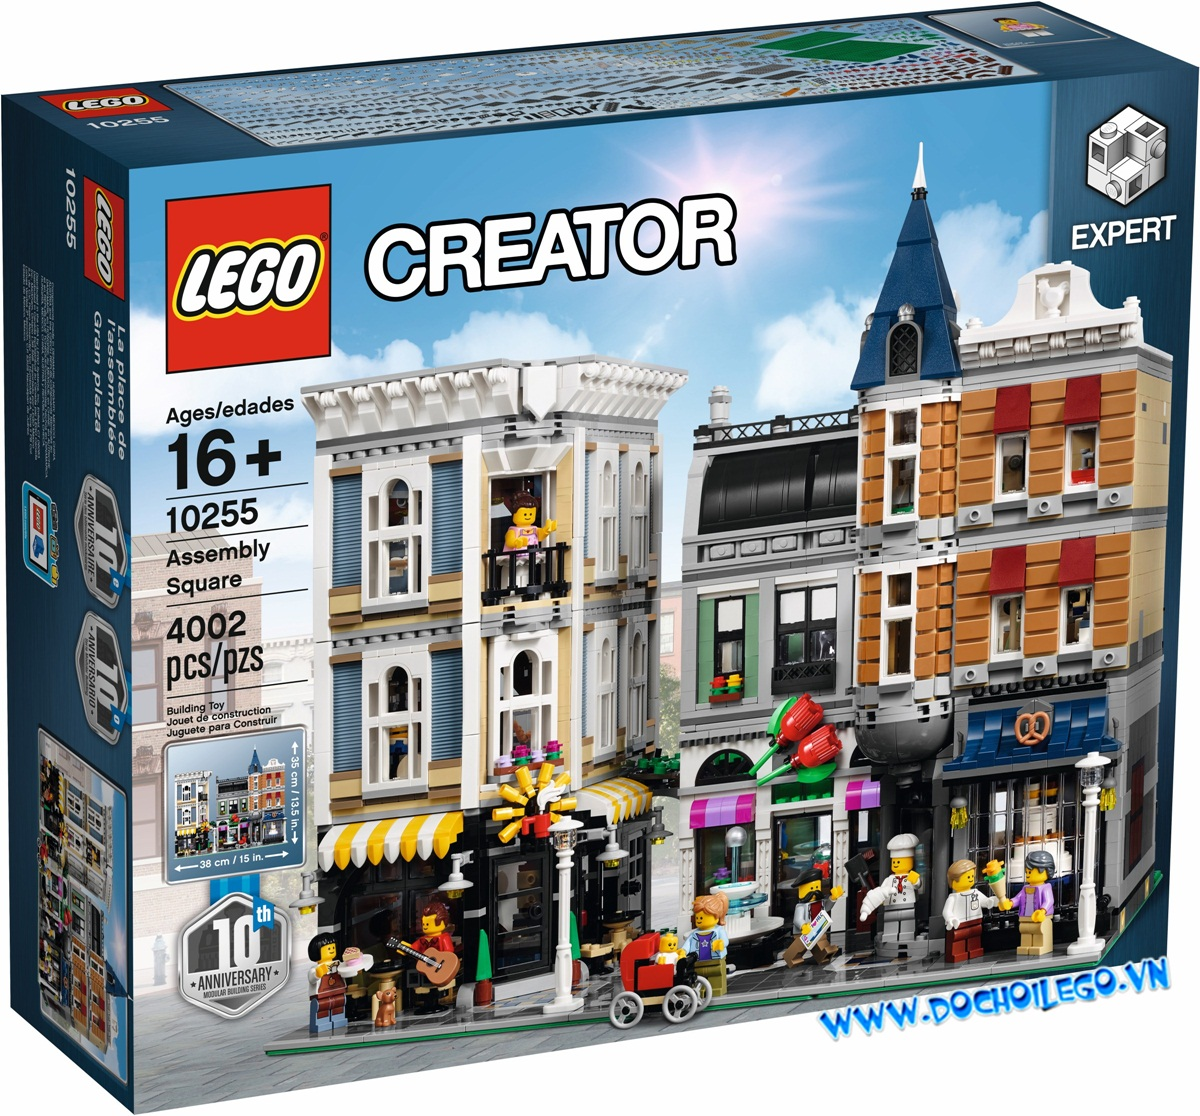 10255 LEGO® Creator Assembly Square